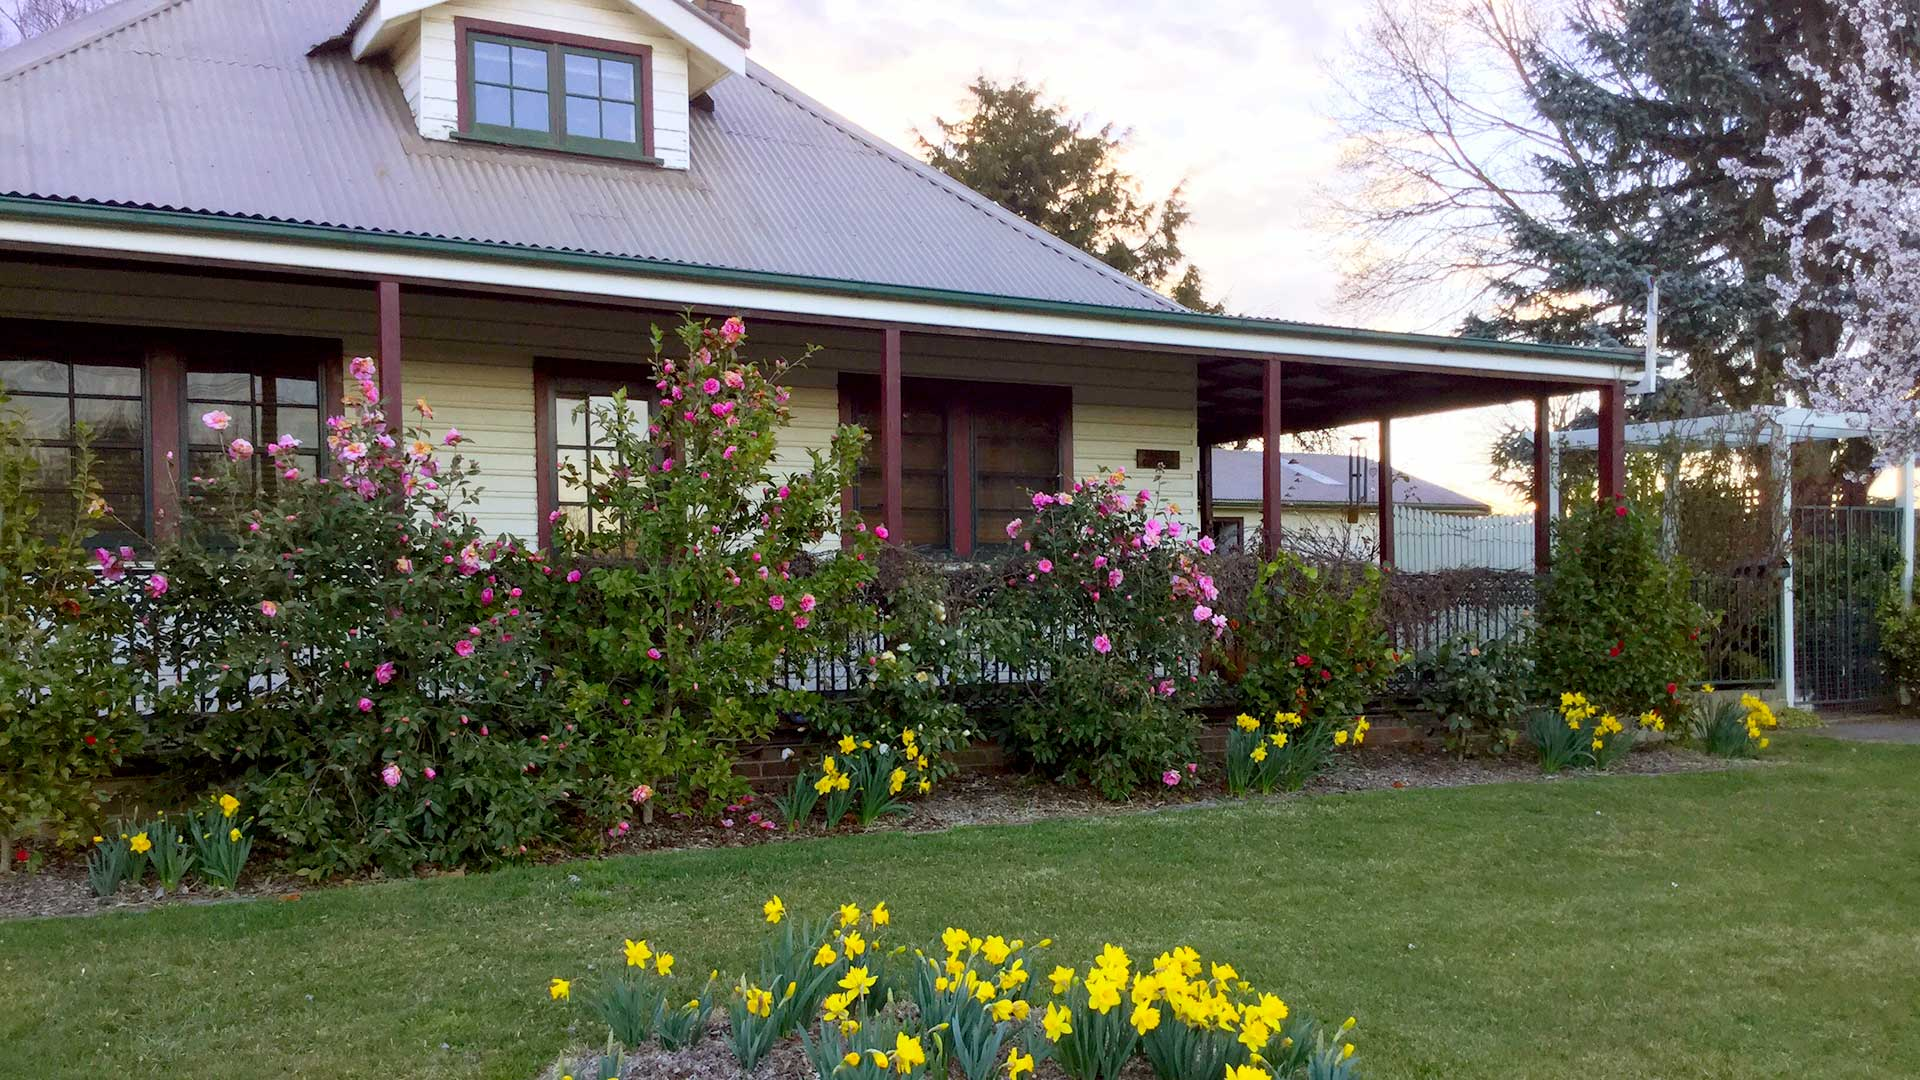 Accommodation - Tally's Cottage Homestay | Vist Oberon